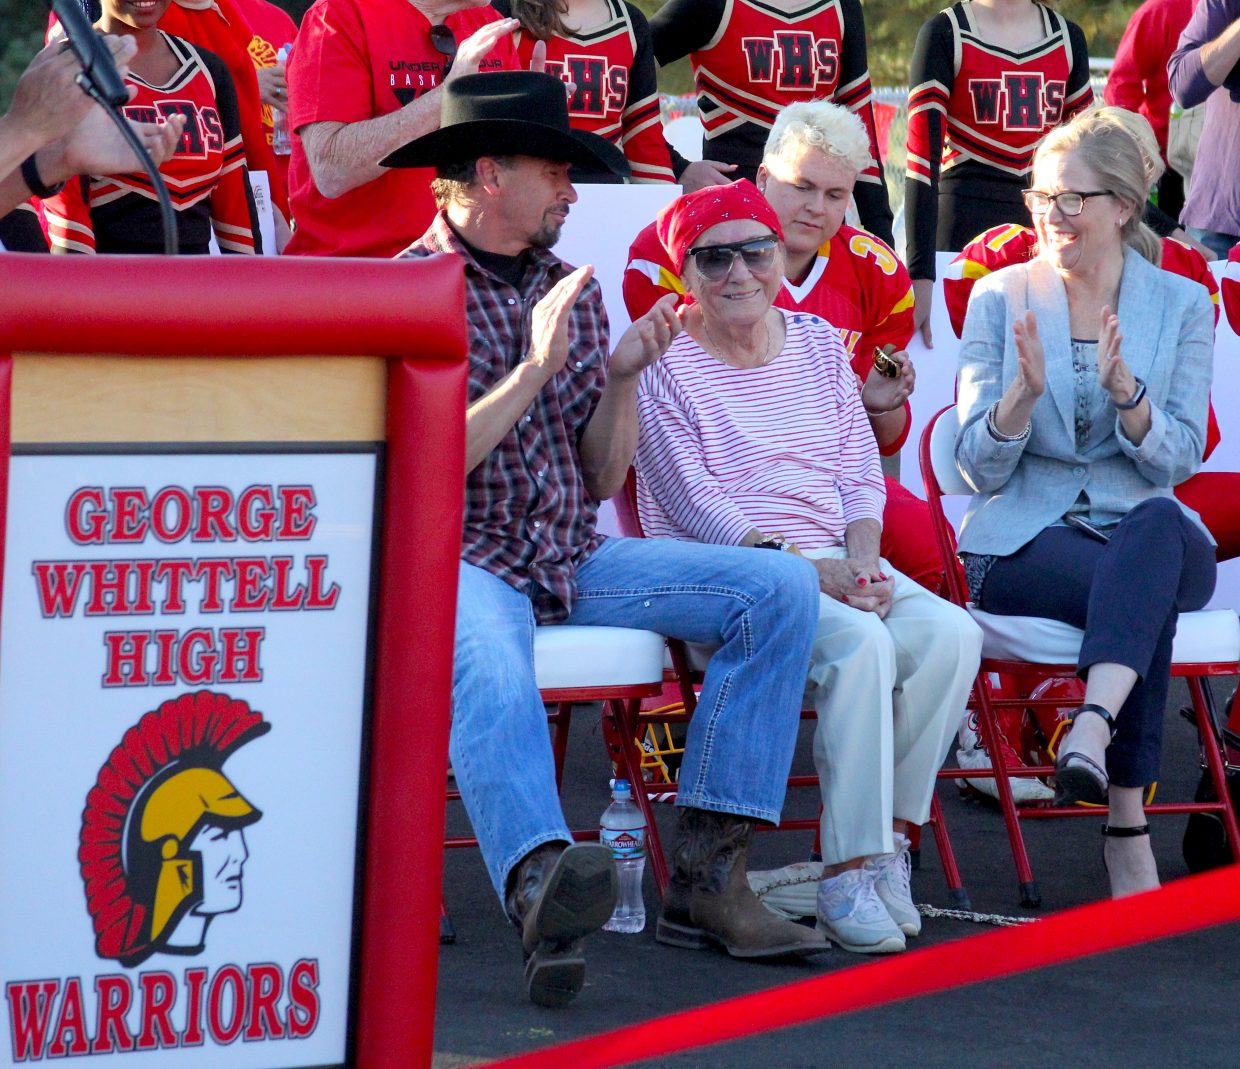 Lisa Maloff is celebrated for her huge donation to George Whittell High School.